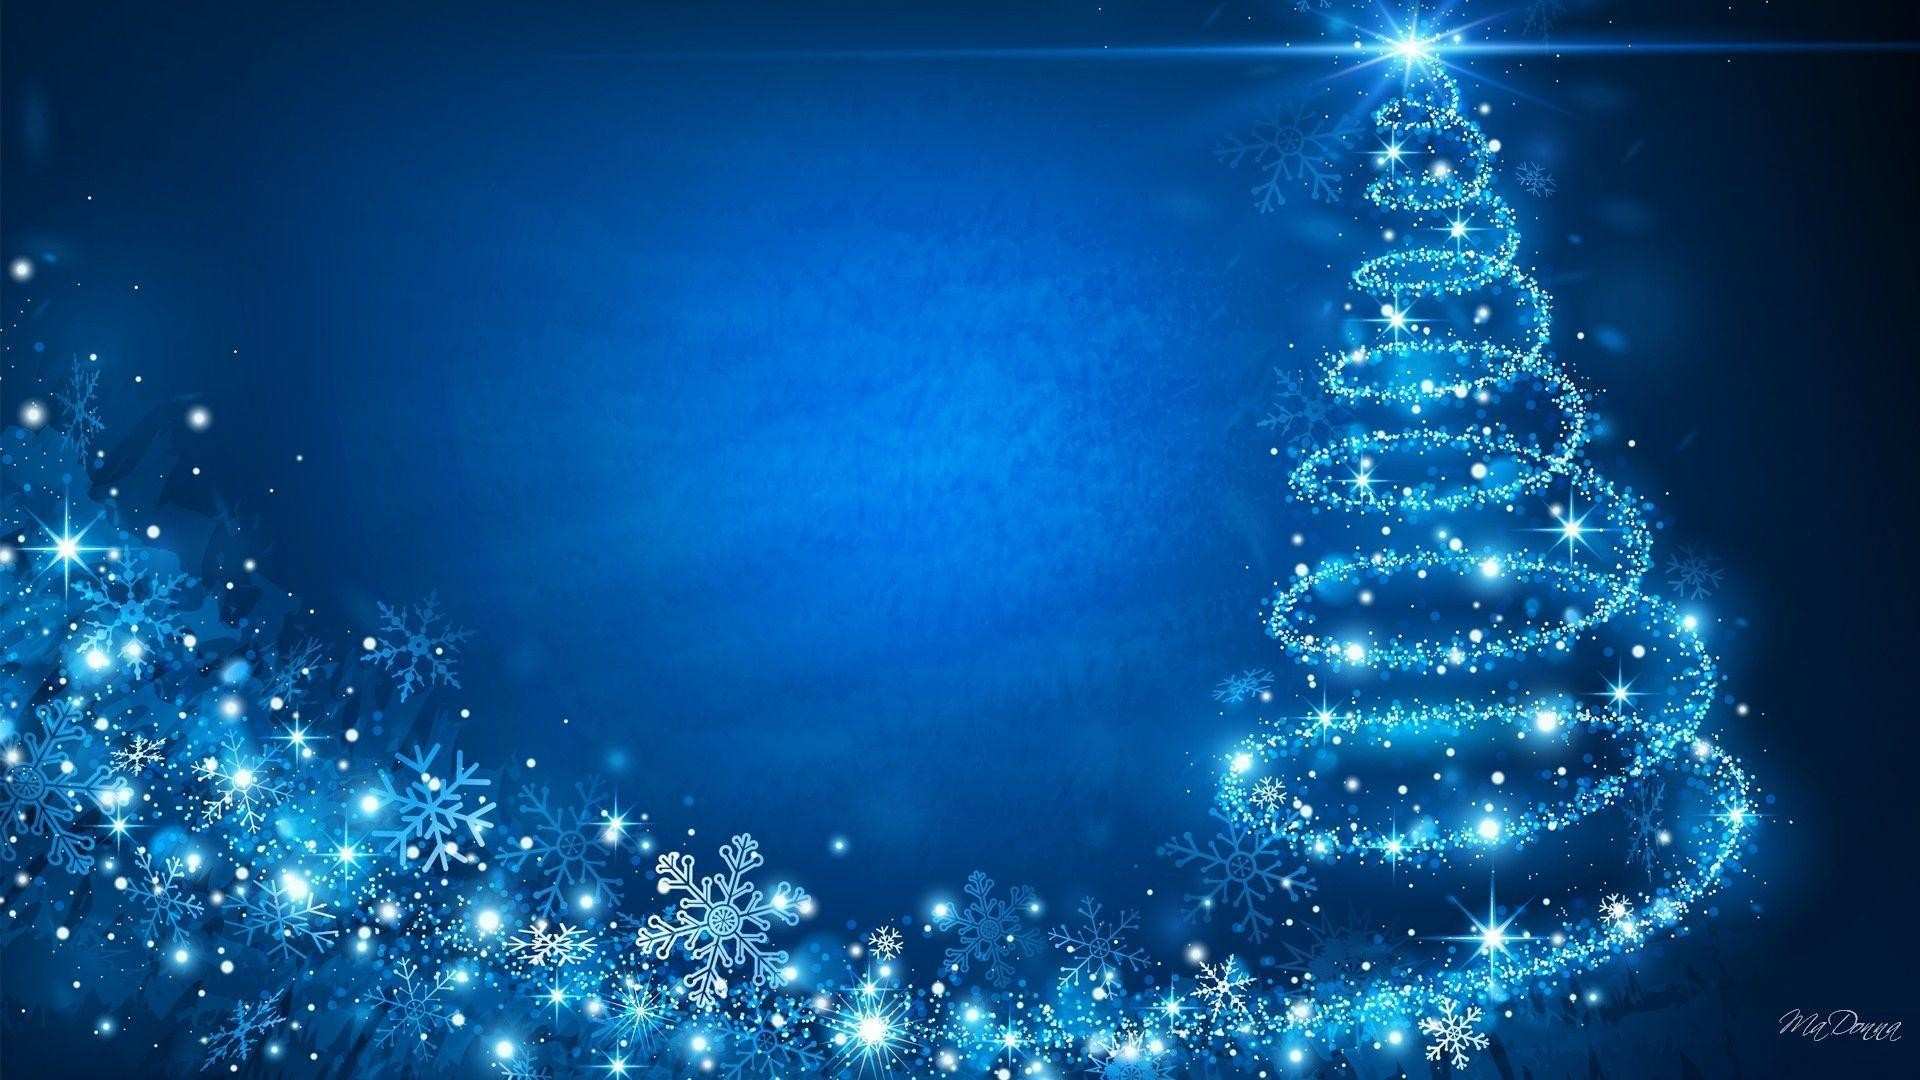 Christmas Backgrounds.Blue Christmas Backgrounds 41 Images